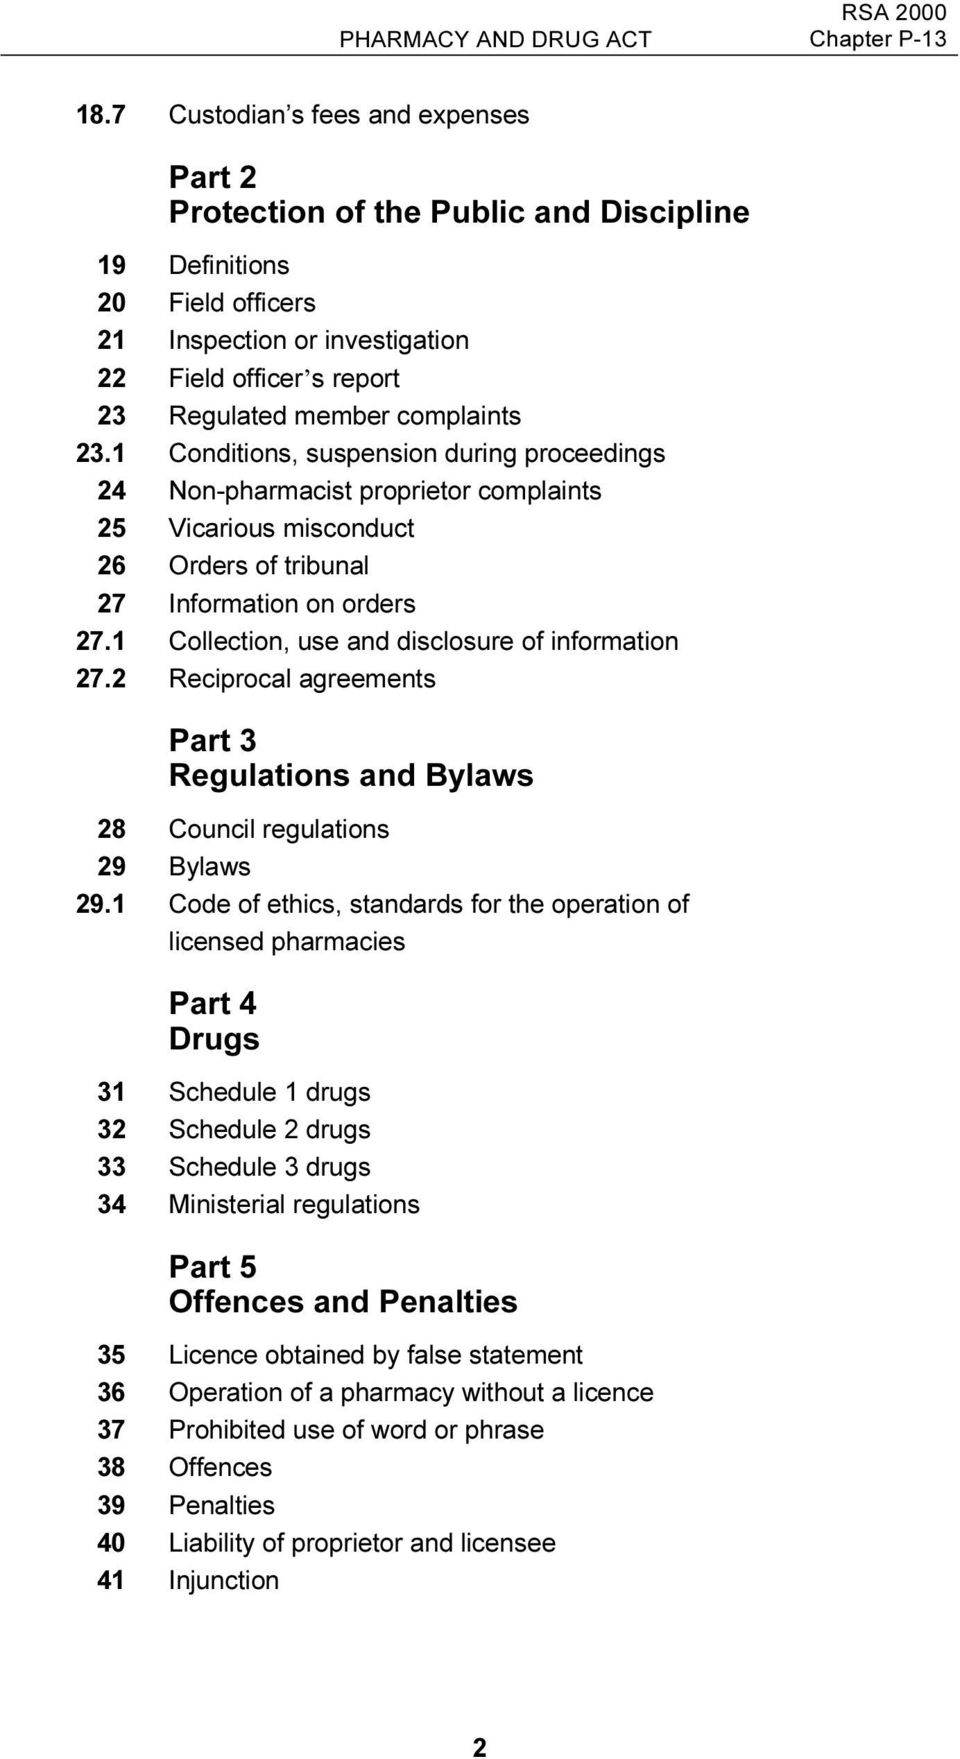 23.1 Conditions, suspension during proceedings 24 Non-pharmacist proprietor complaints 25 Vicarious misconduct 26 Orders of tribunal 27 Information on orders 27.